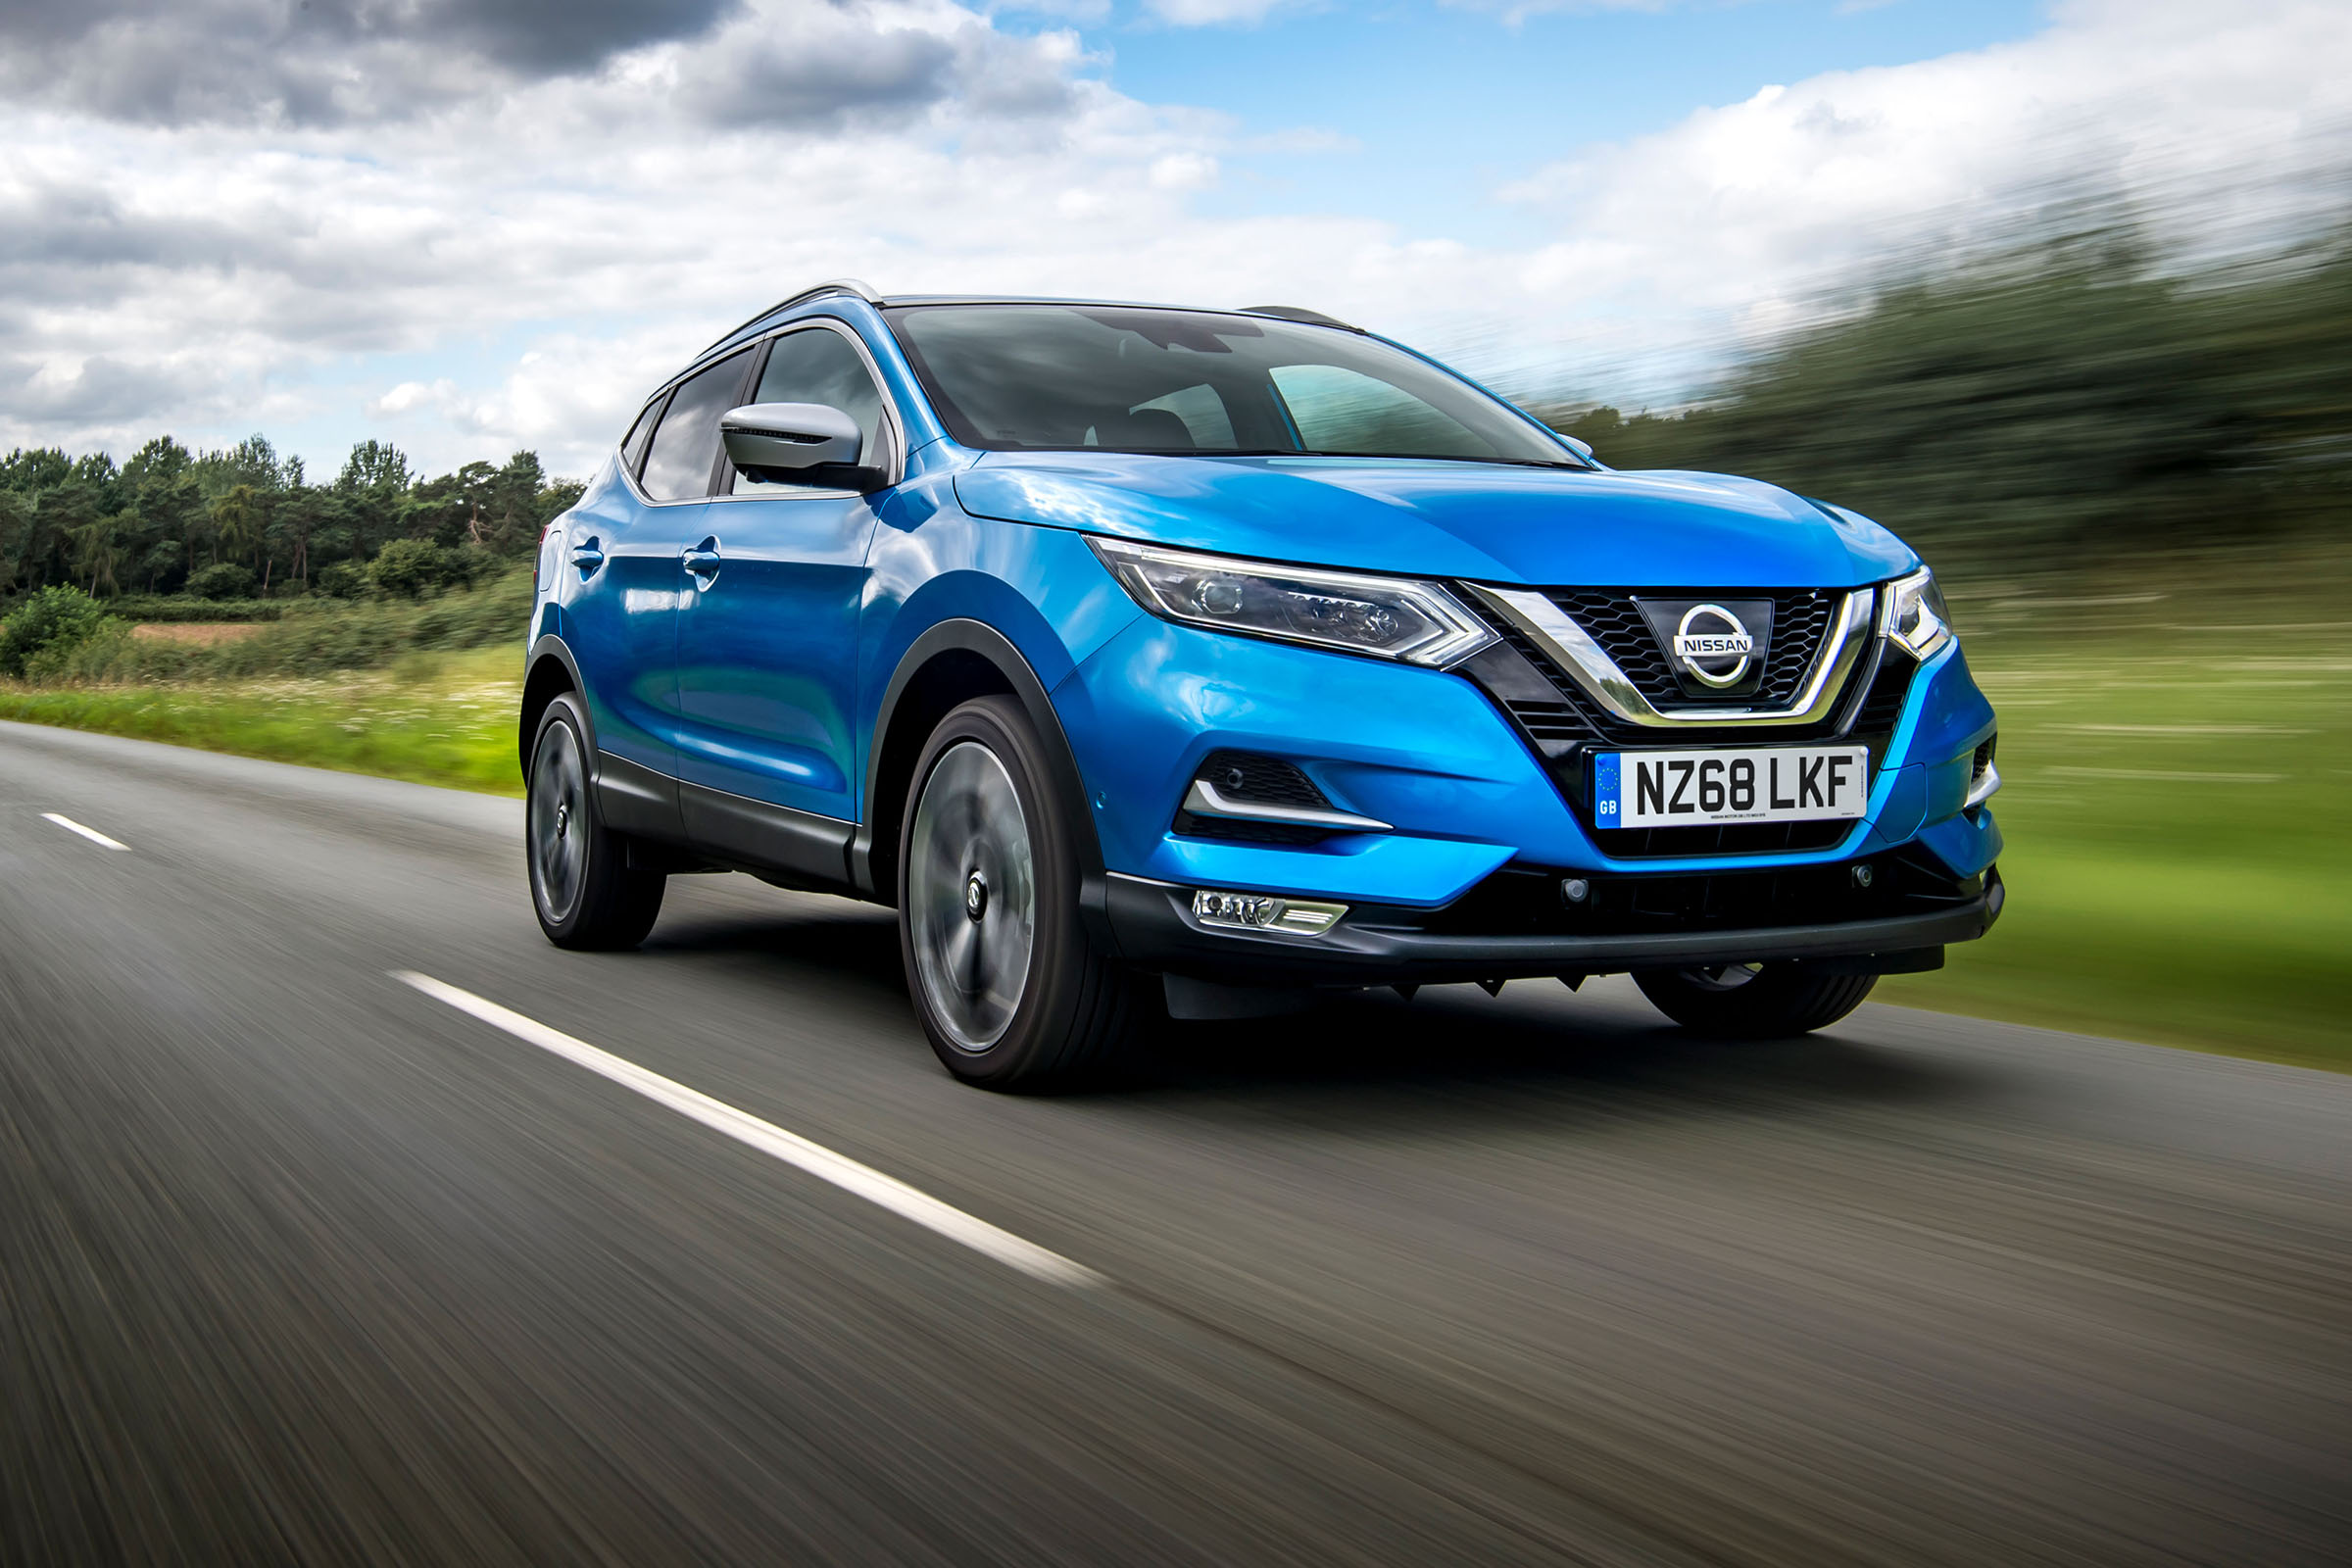 91 New 2019 Nissan Qashqai Specs and Review